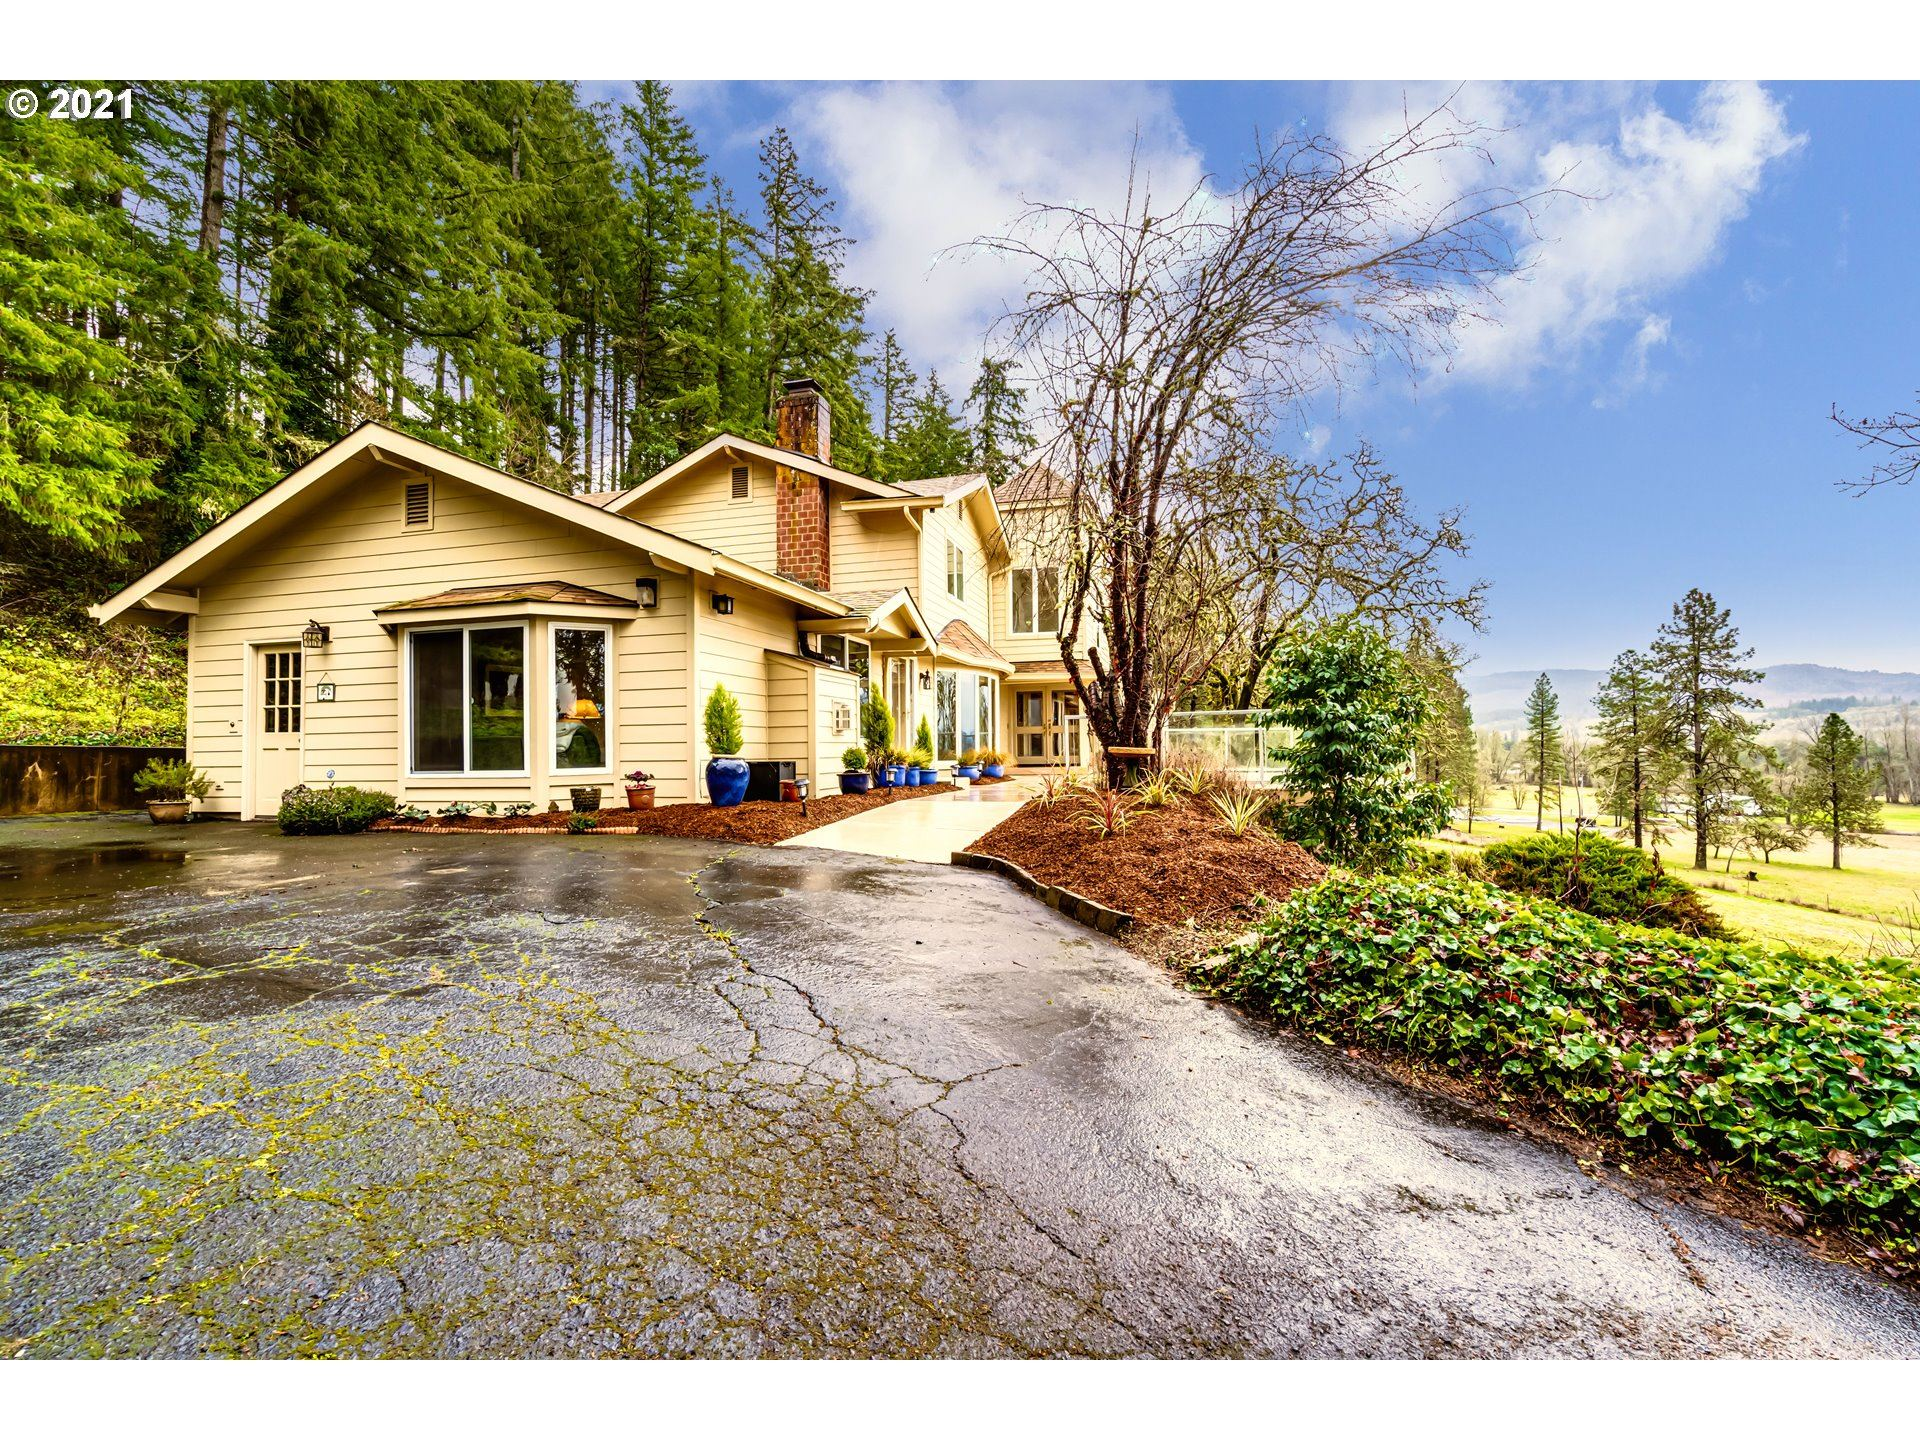 Photo for 35787 ENTERPRISE RD, Creswell, OR 97426 (MLS # 21312370)